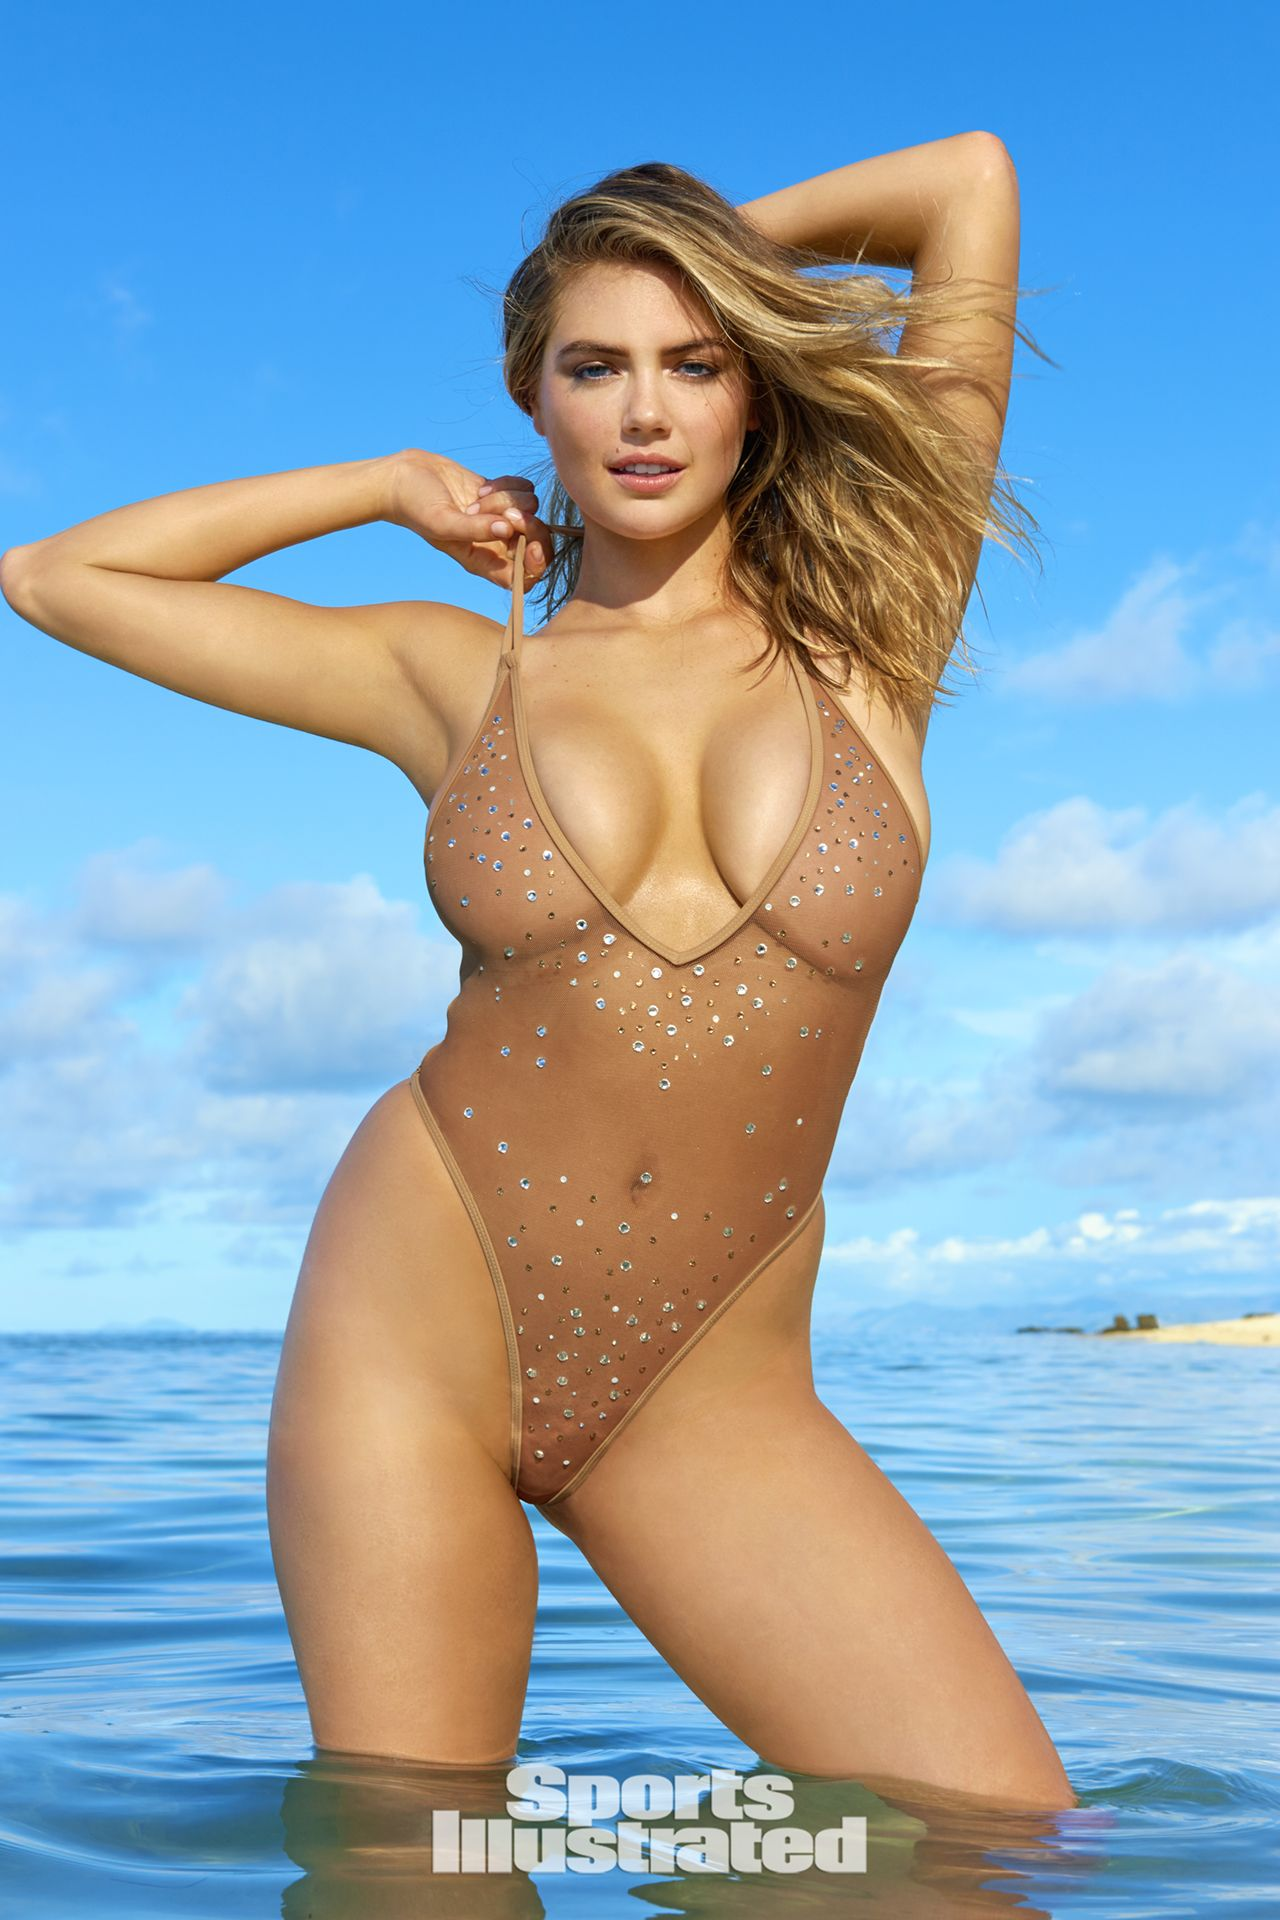 Take A Look About Swimsuit Models Video with Extraordinary Gallery